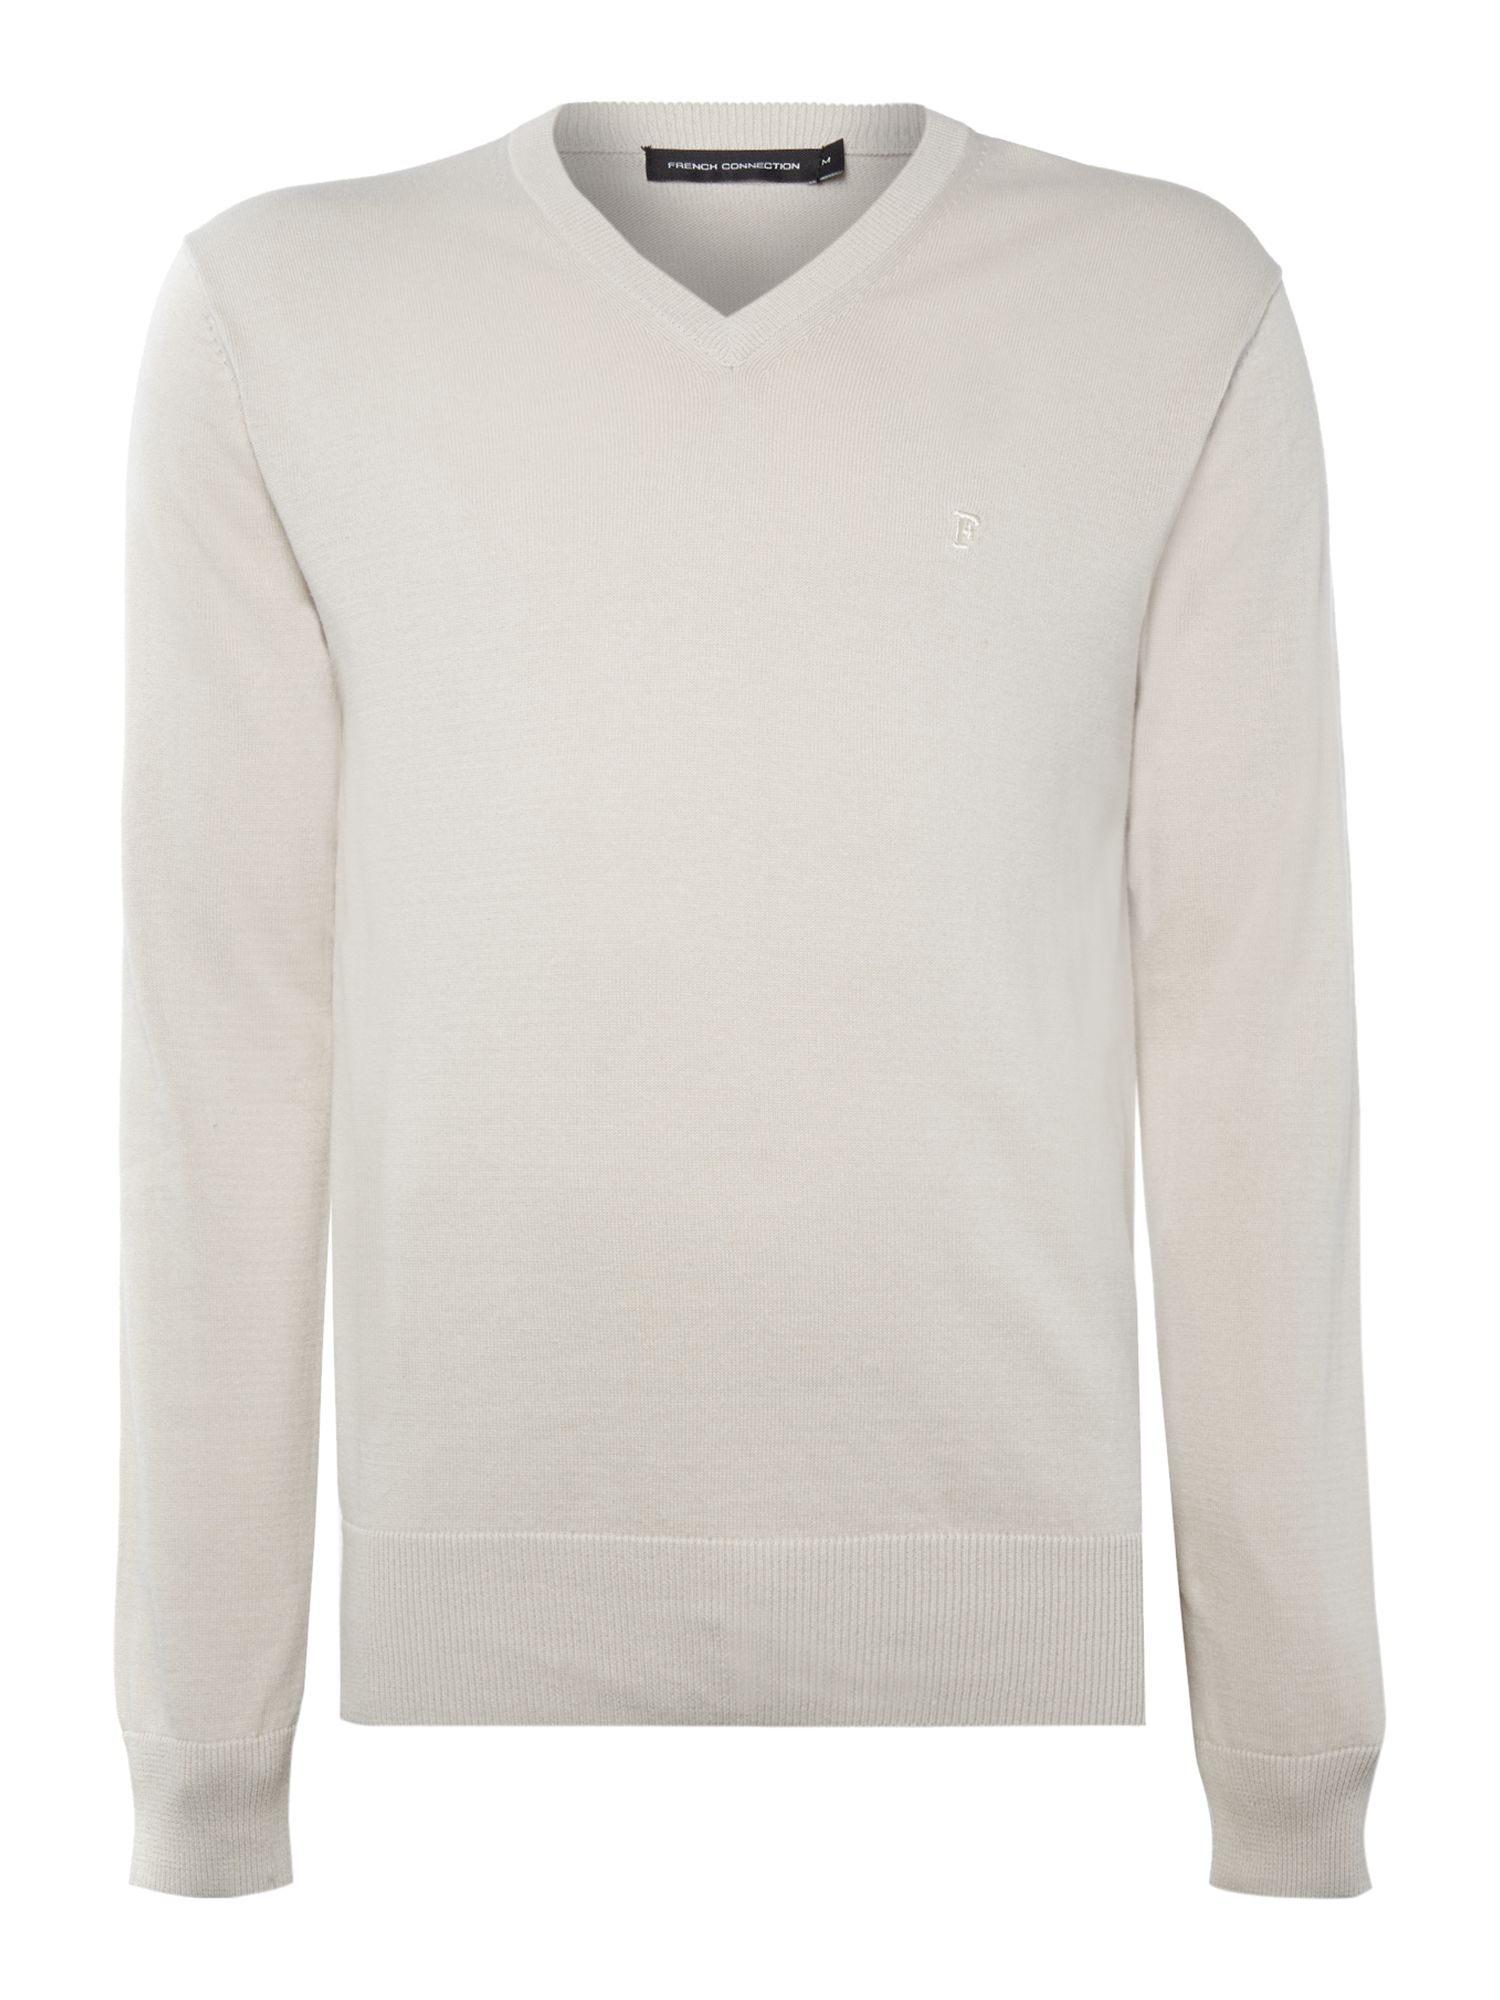 Auderly cotton v neck  jumper